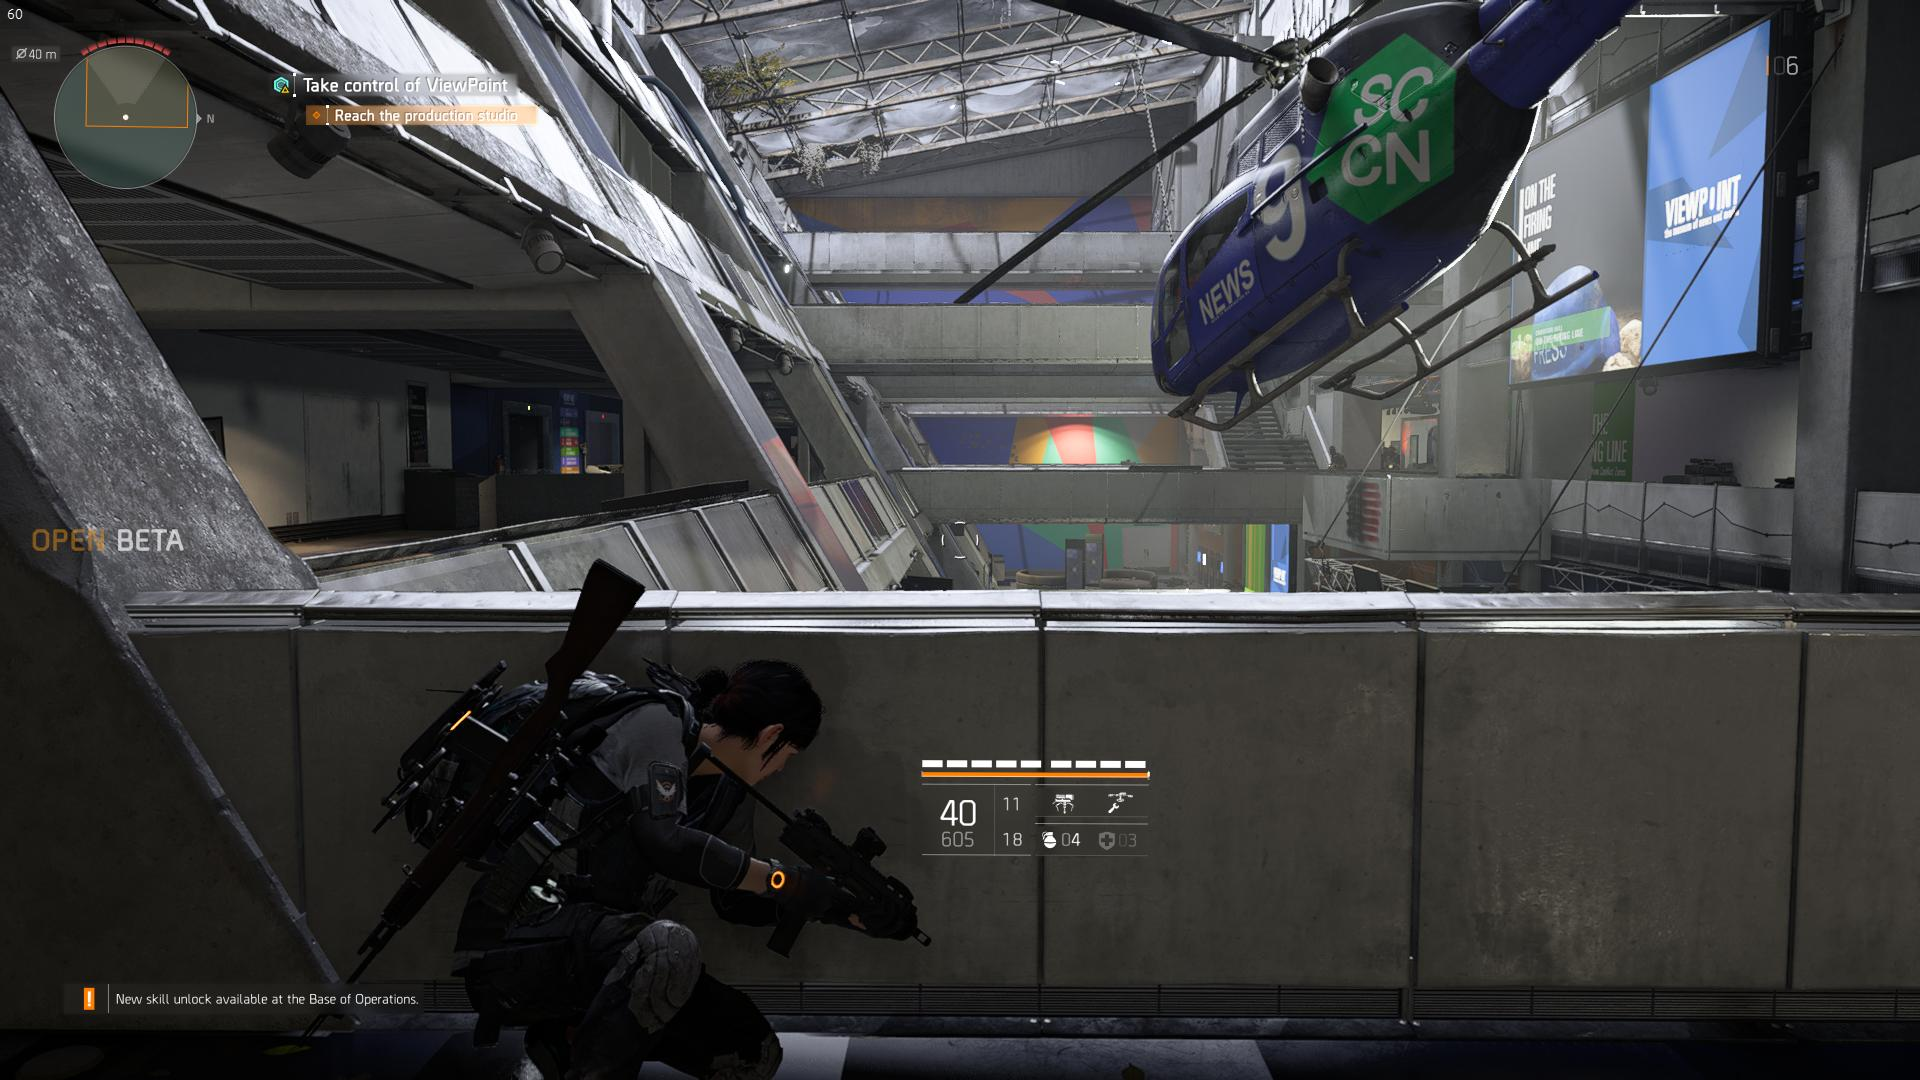 Tom Clancy's The Division 2: Viewpoint Museum, Superior Gear and a